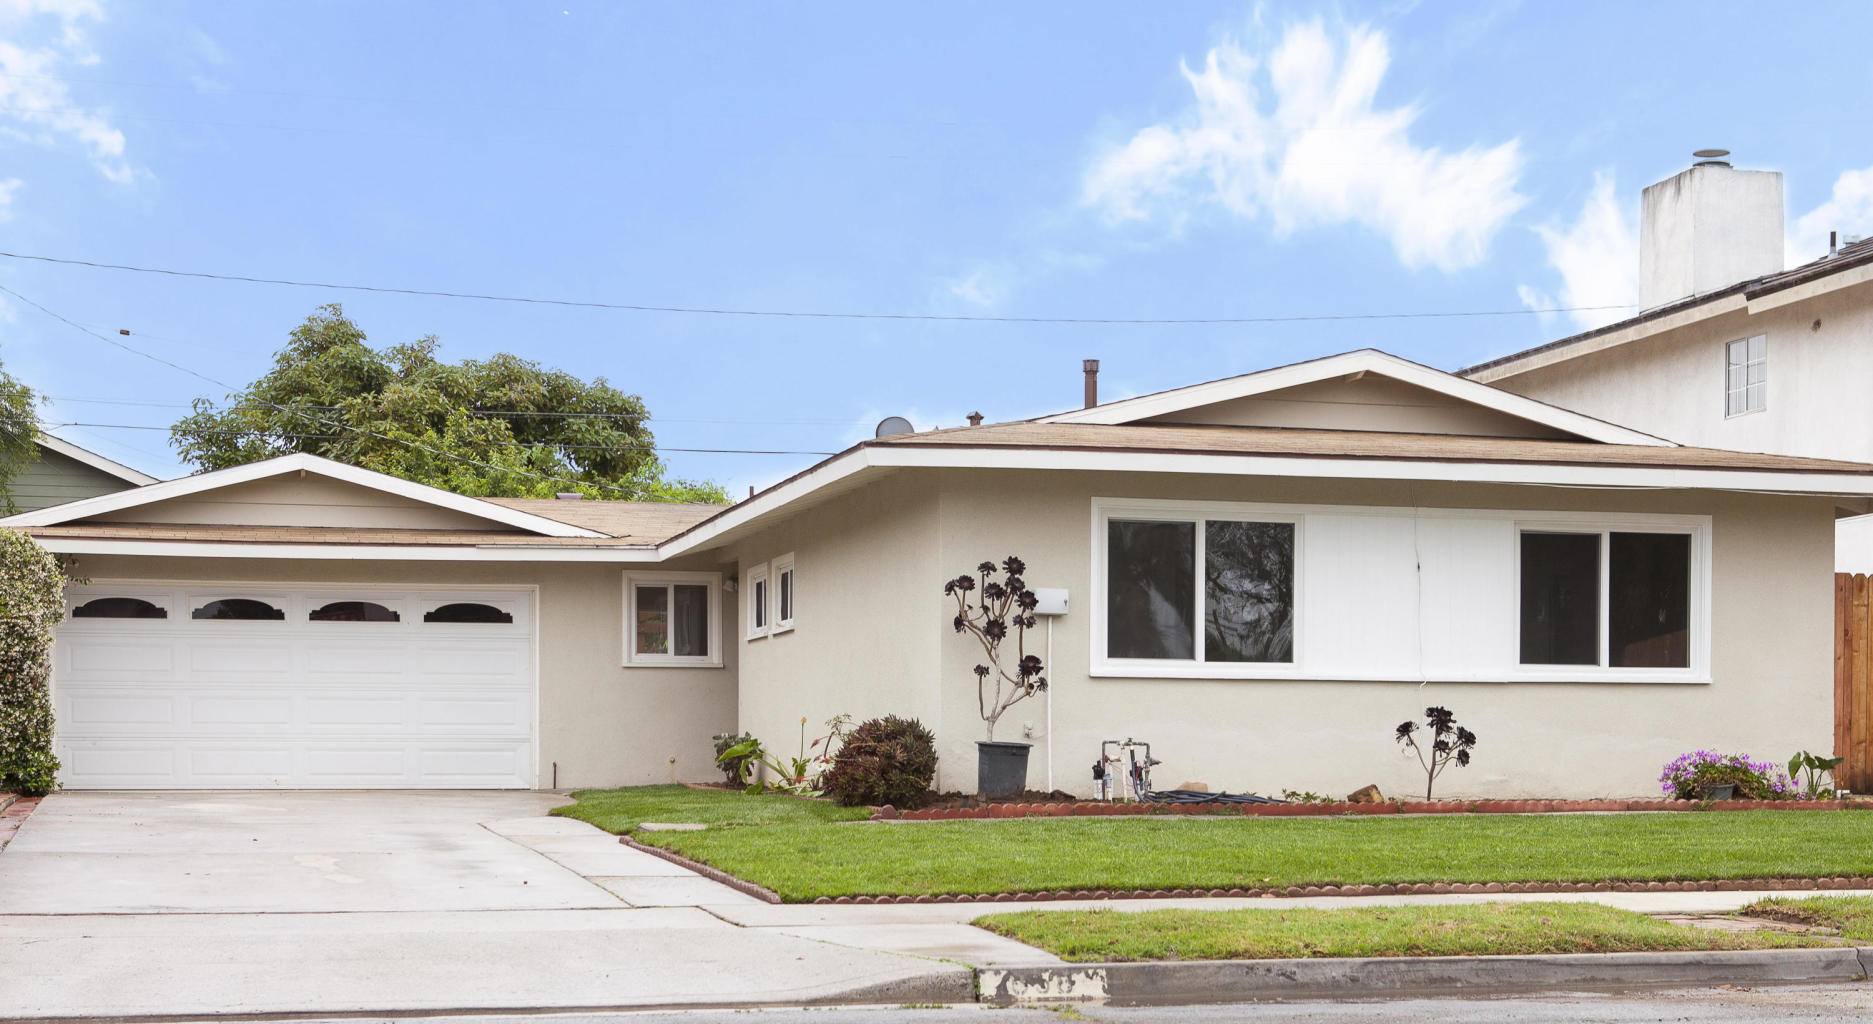 658 Andy Lane, Santa Barbara CA 93111